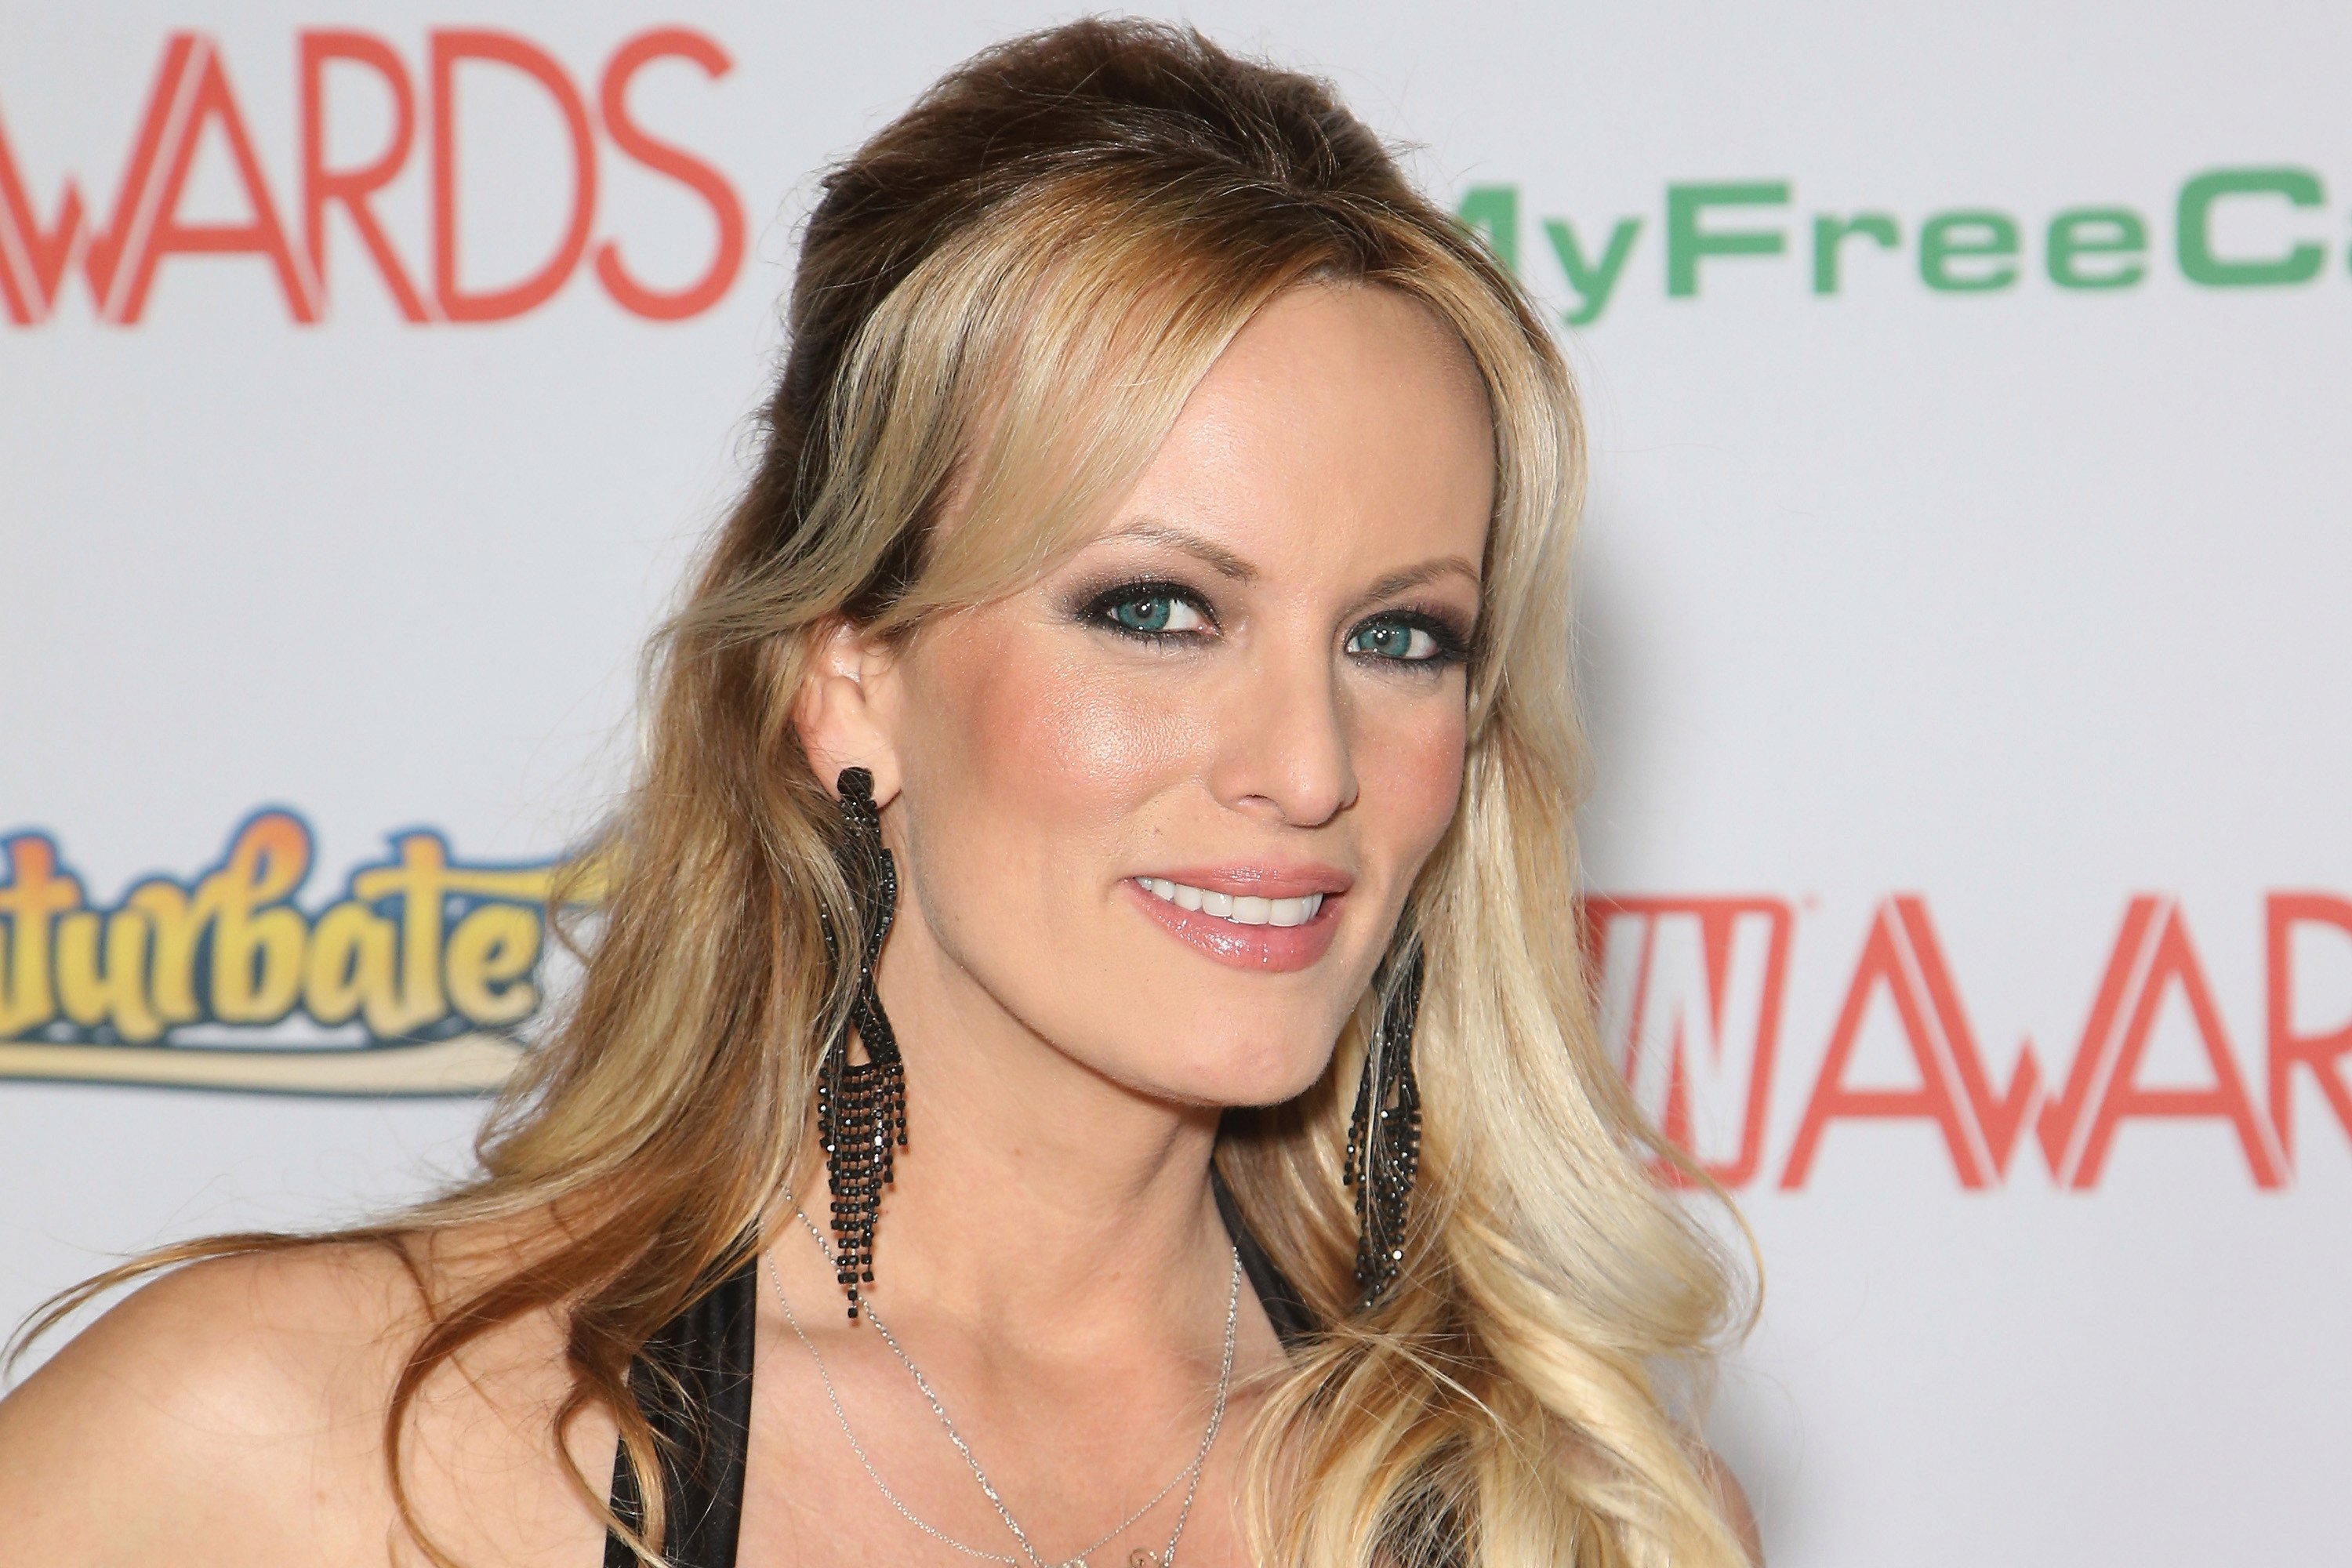 Stormy Daniels really cashing in on the 'Trump effect'